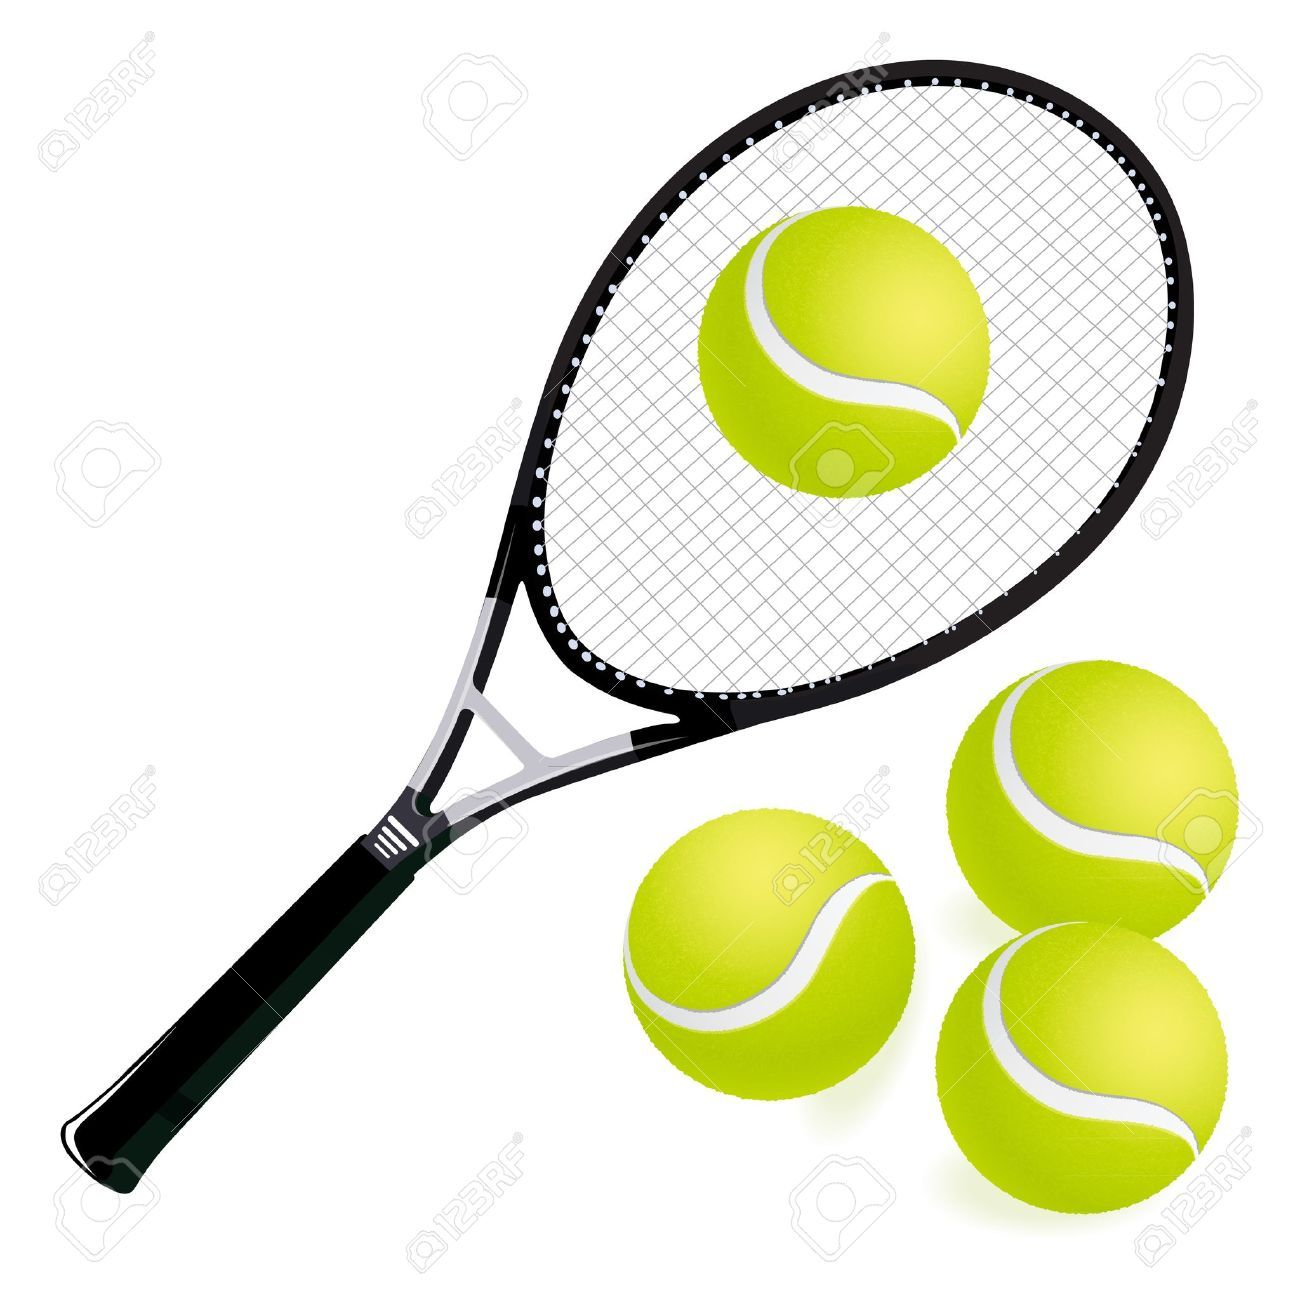 tennis racket stock illustrations cliparts and royalty free 21 559 tennis racket stock [ 1300 x 1300 Pixel ]